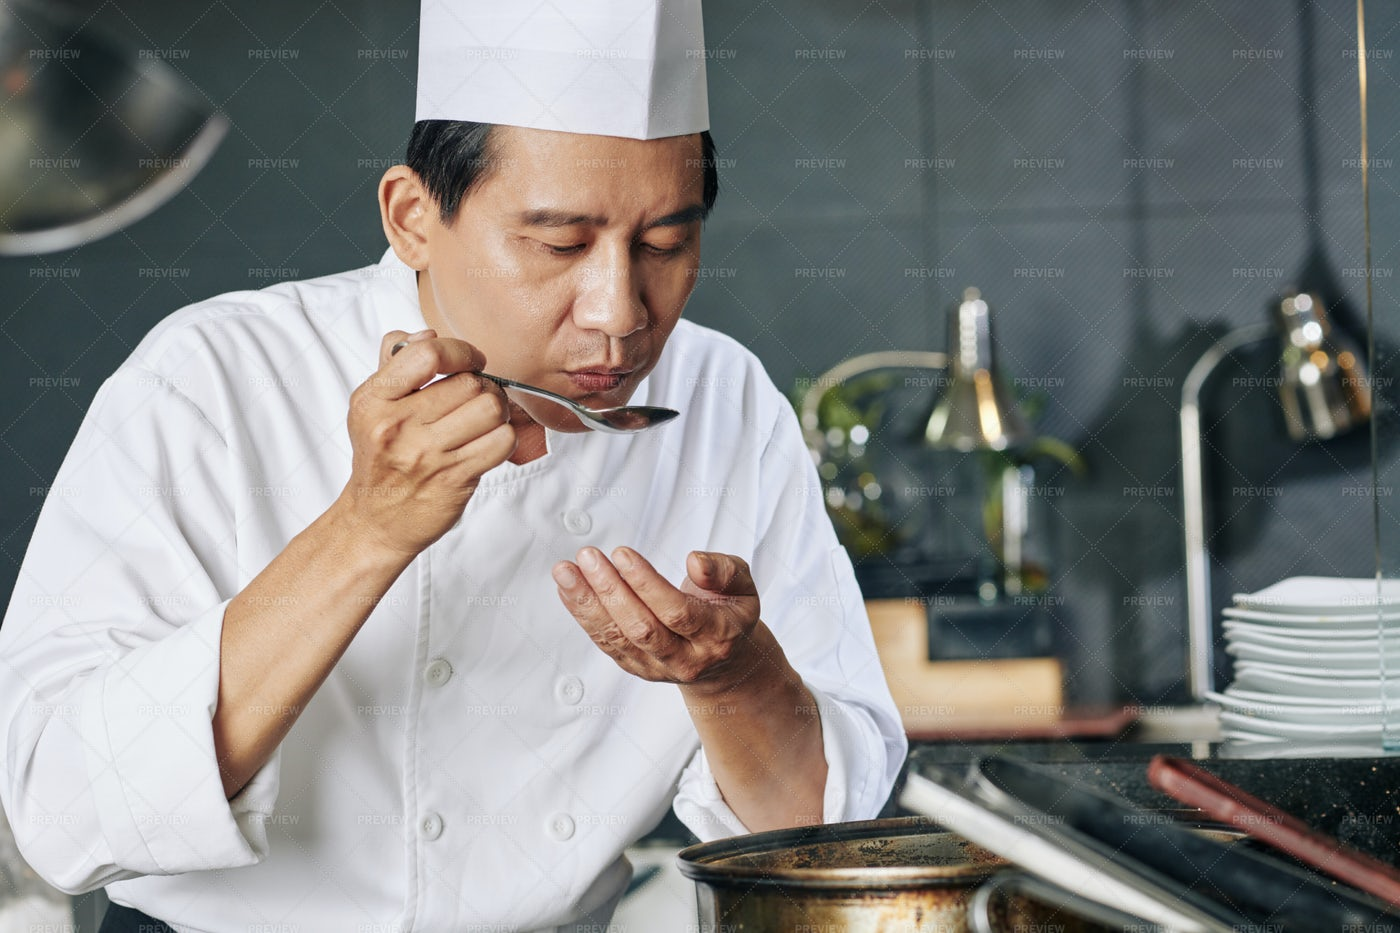 Cook Tasting The Dish: Stock Photos